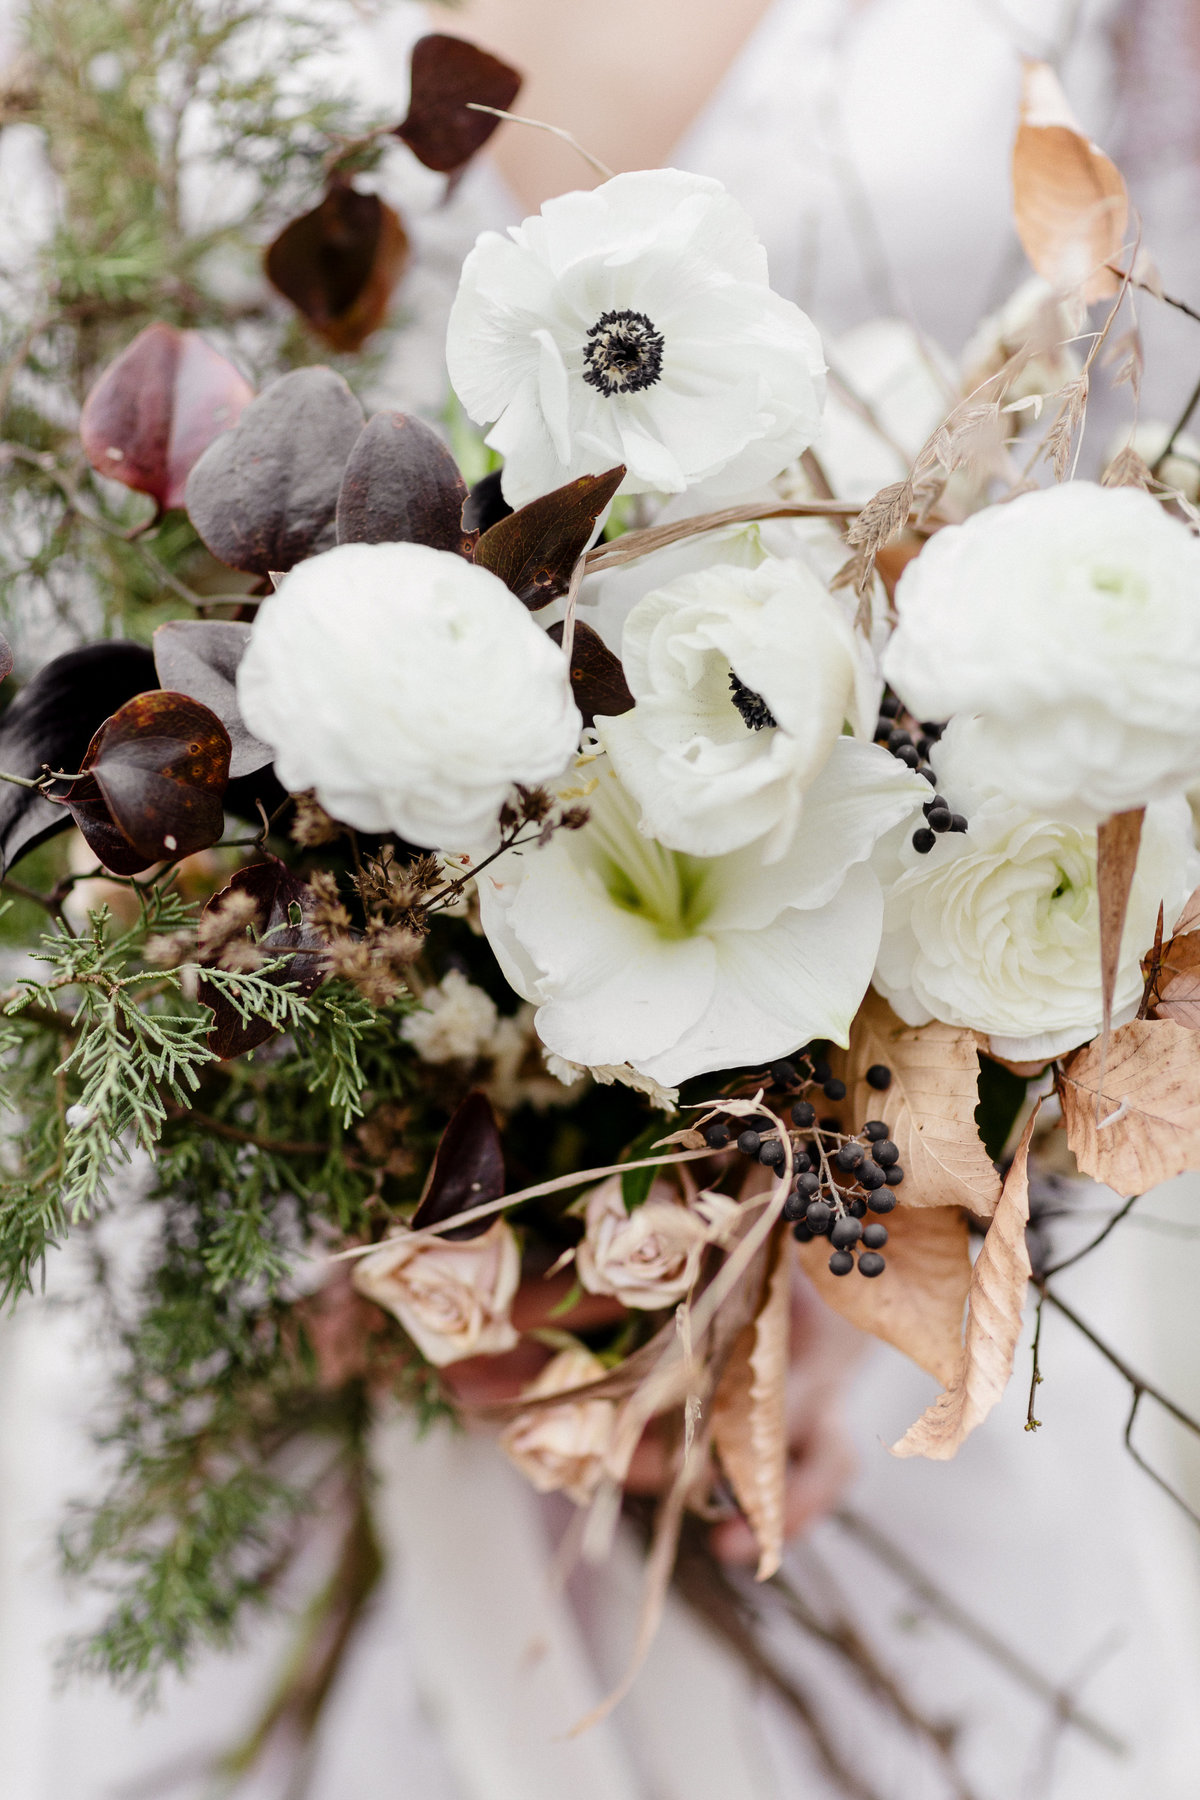 Winter bridal bouquet from Eothen and dress from Loho Bride